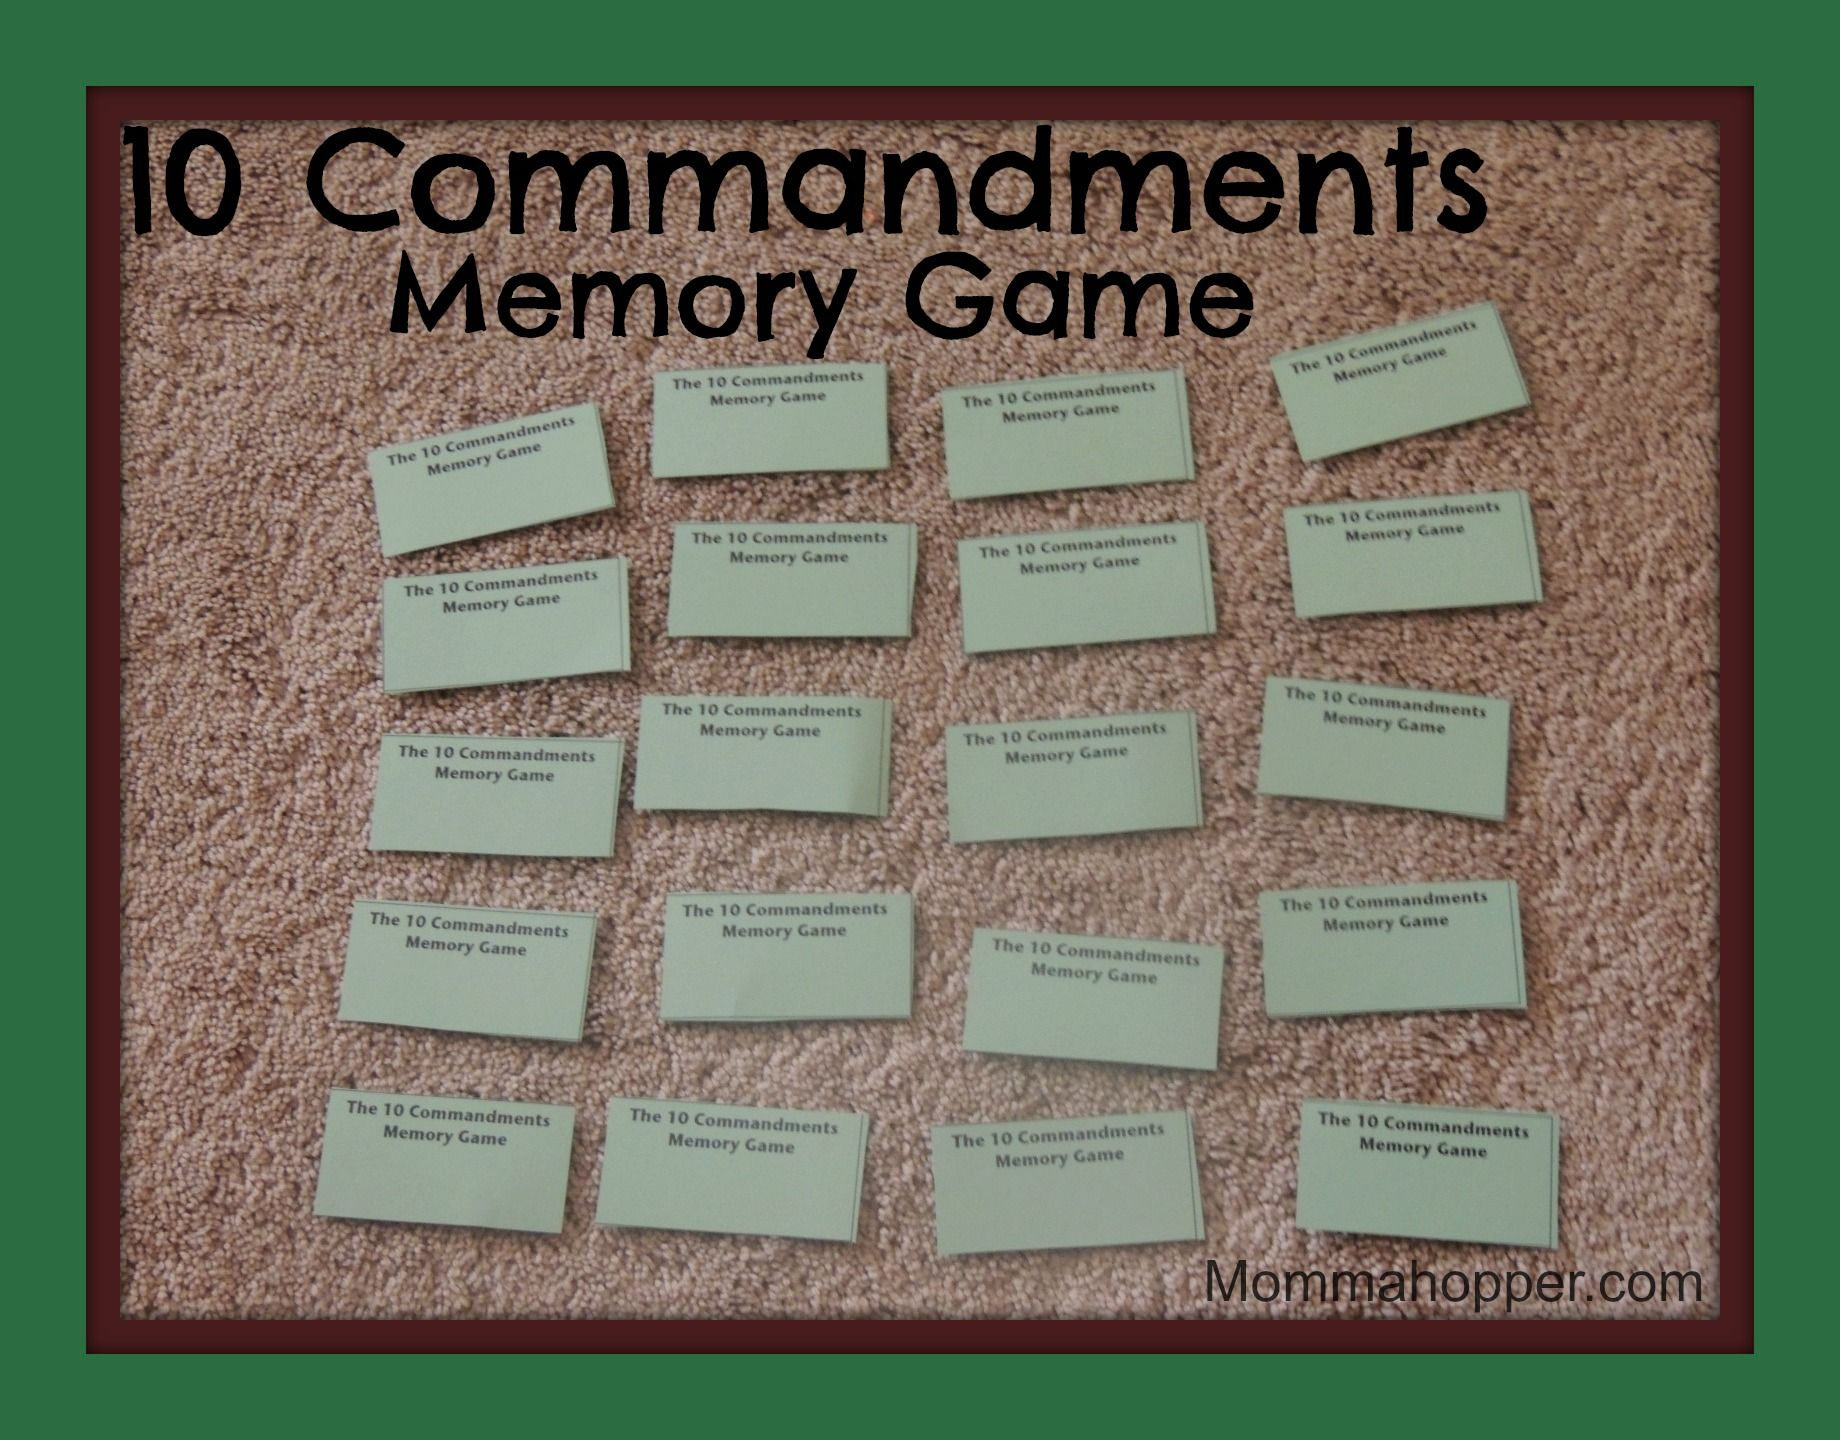 10 Commandments Memory Game